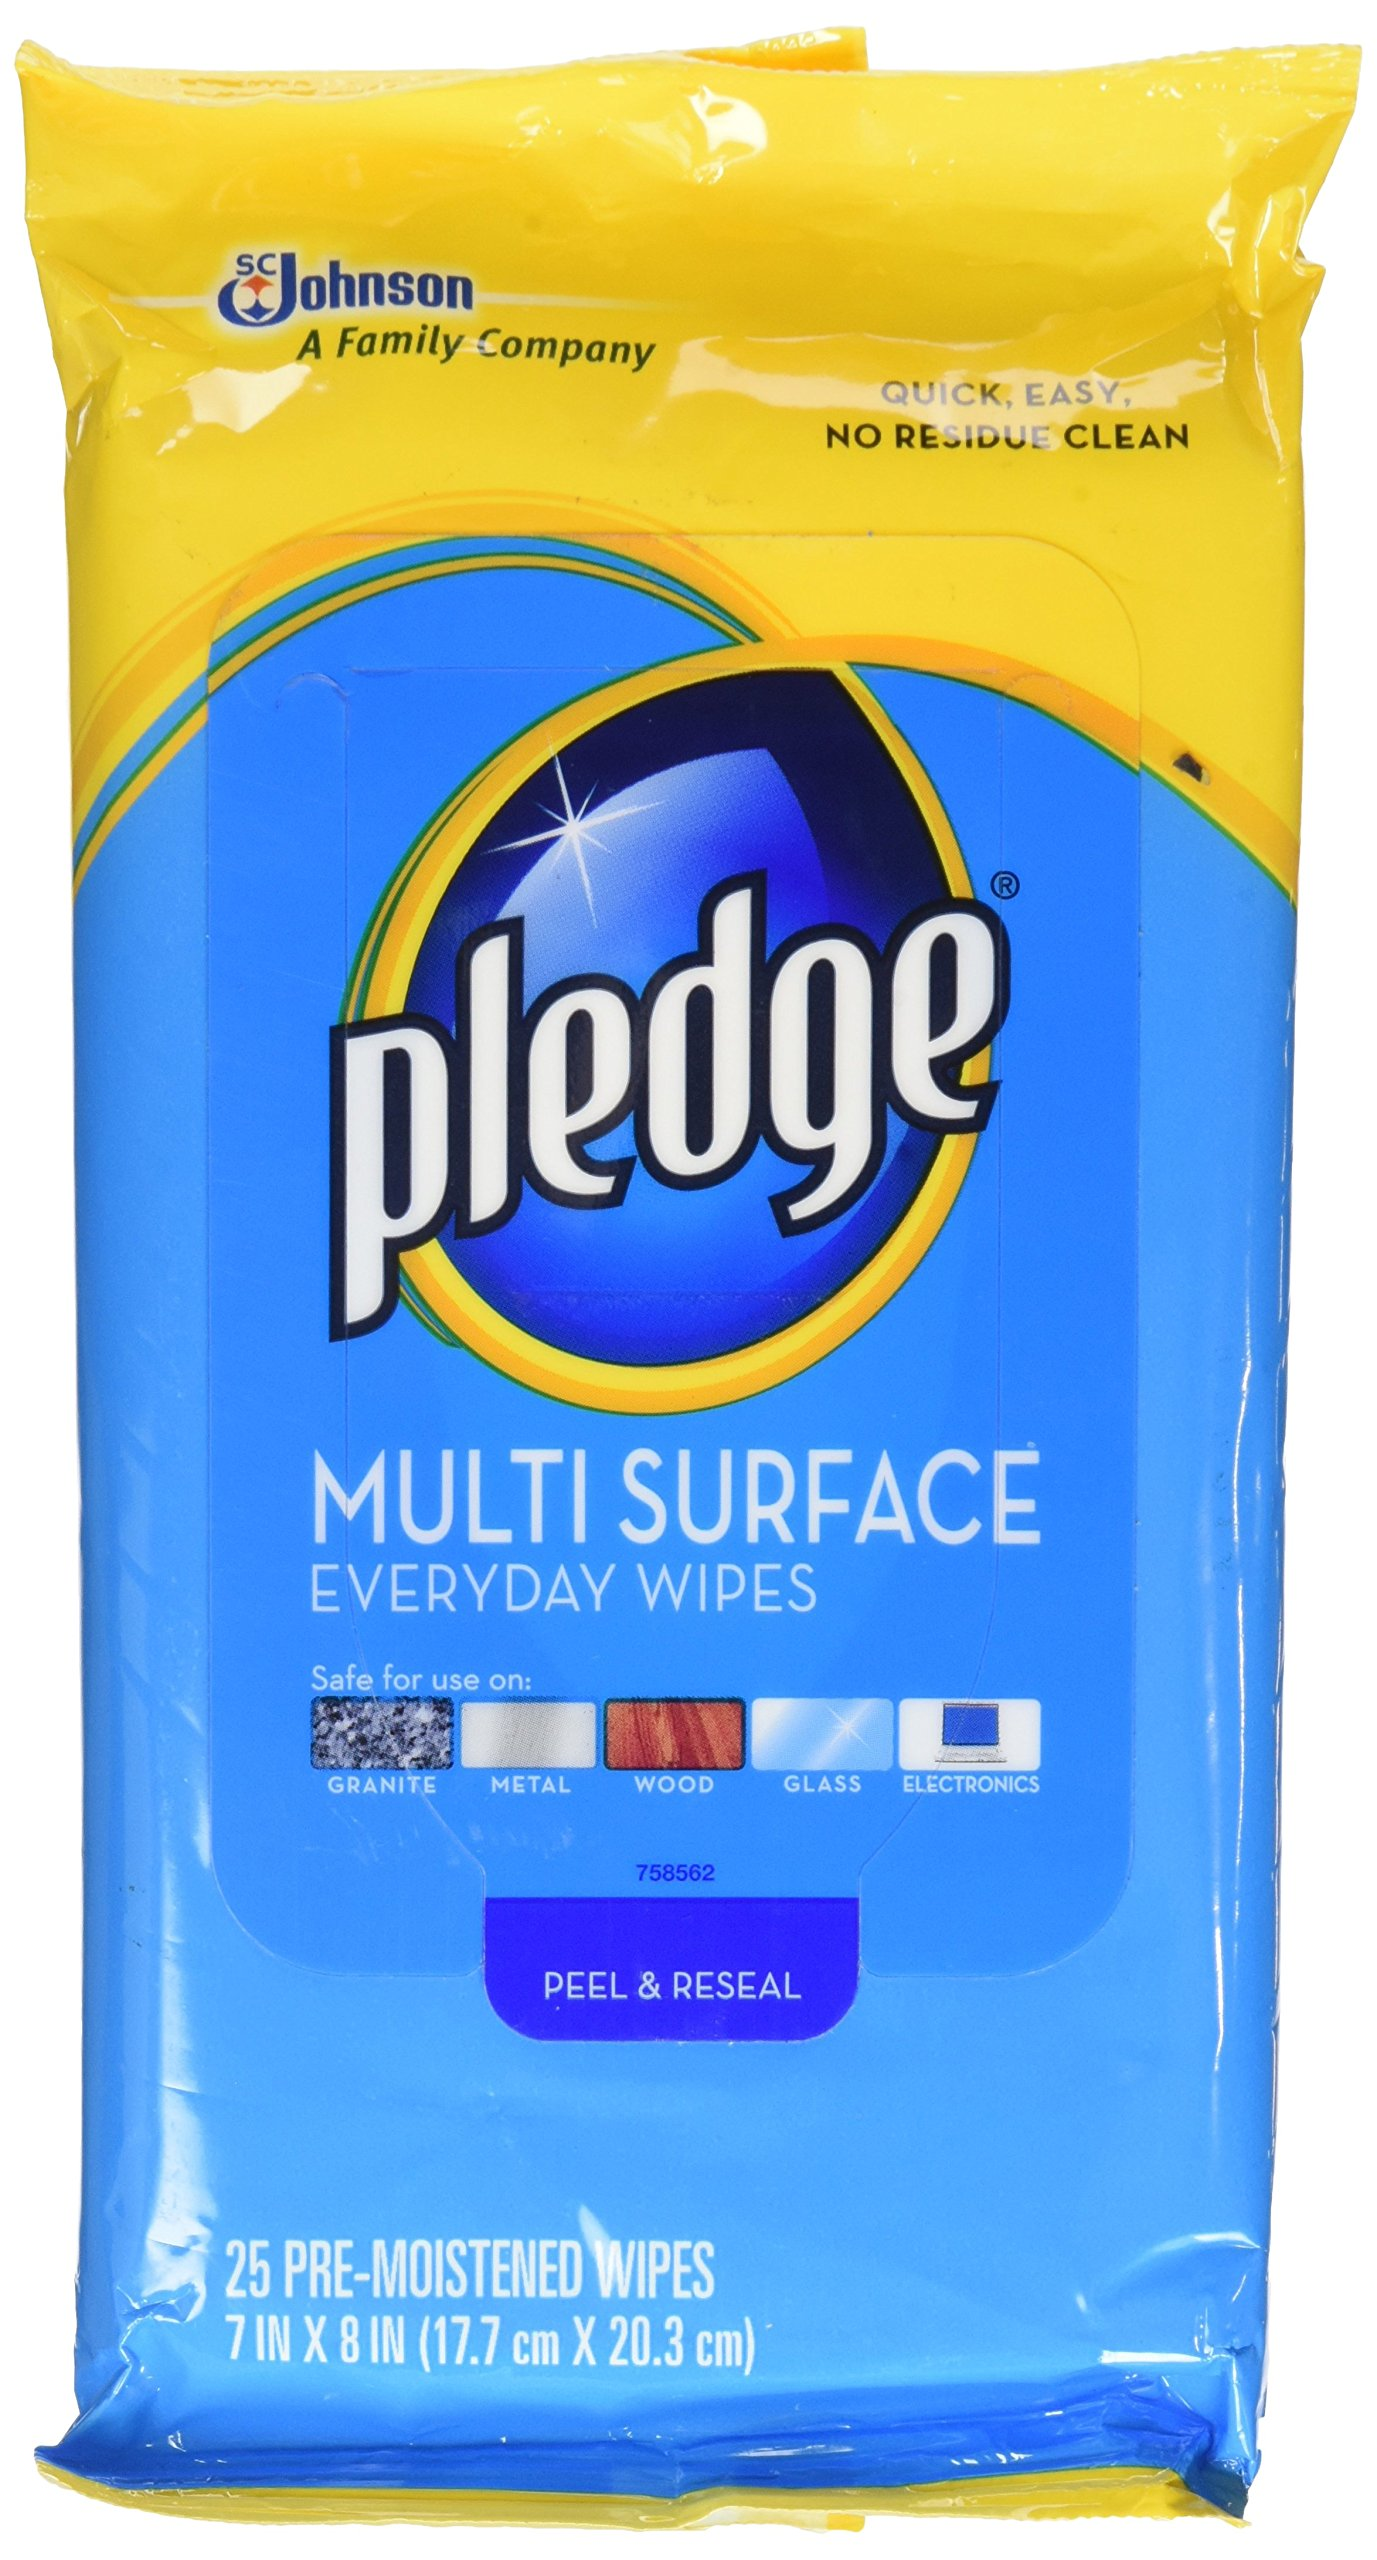 Pledge Multi Surface Everyday Wipes 25 ea (Pack of 2)